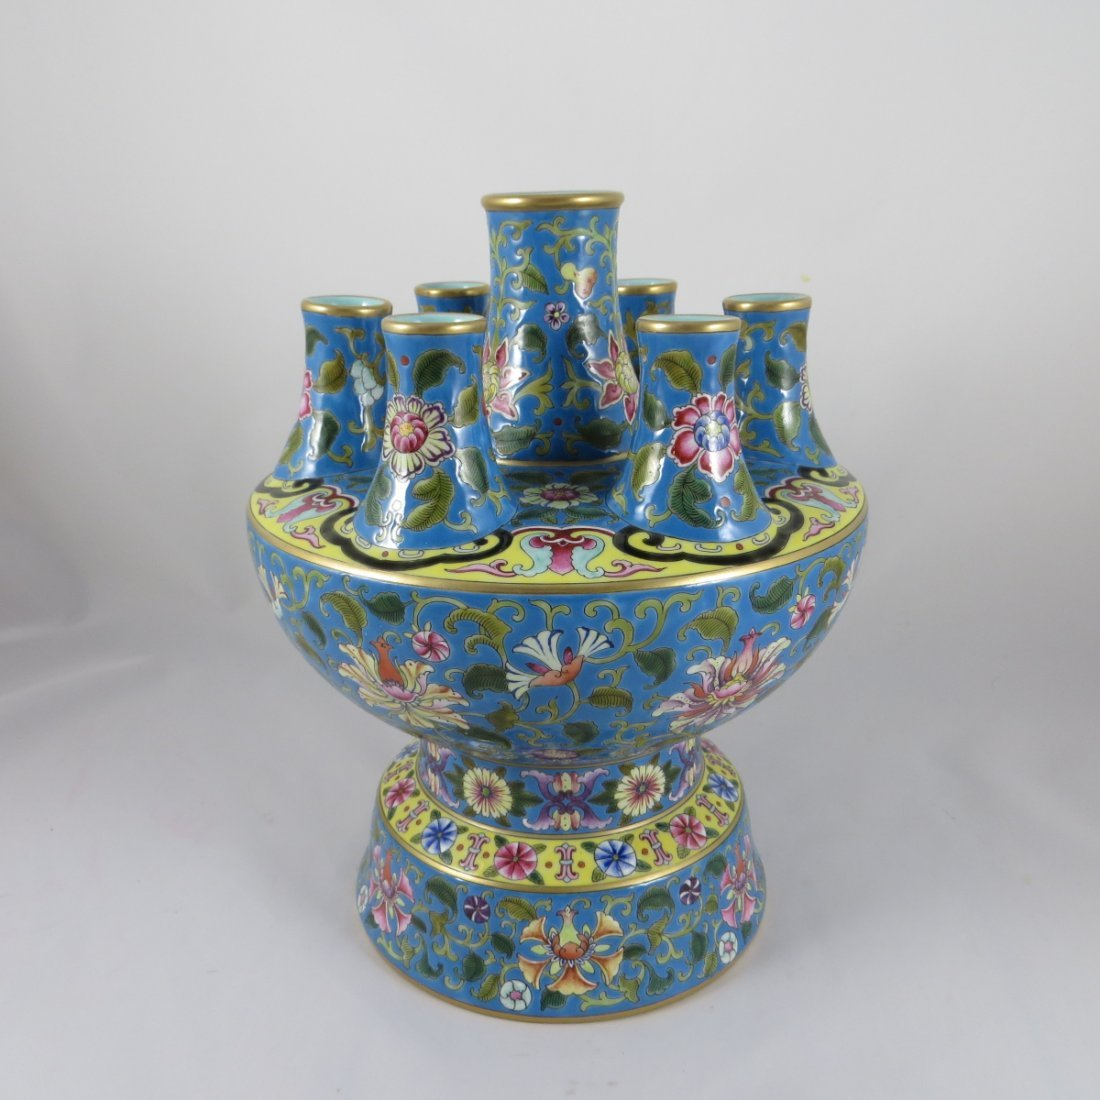 An Exceptional Chinese Famille Rose Vase